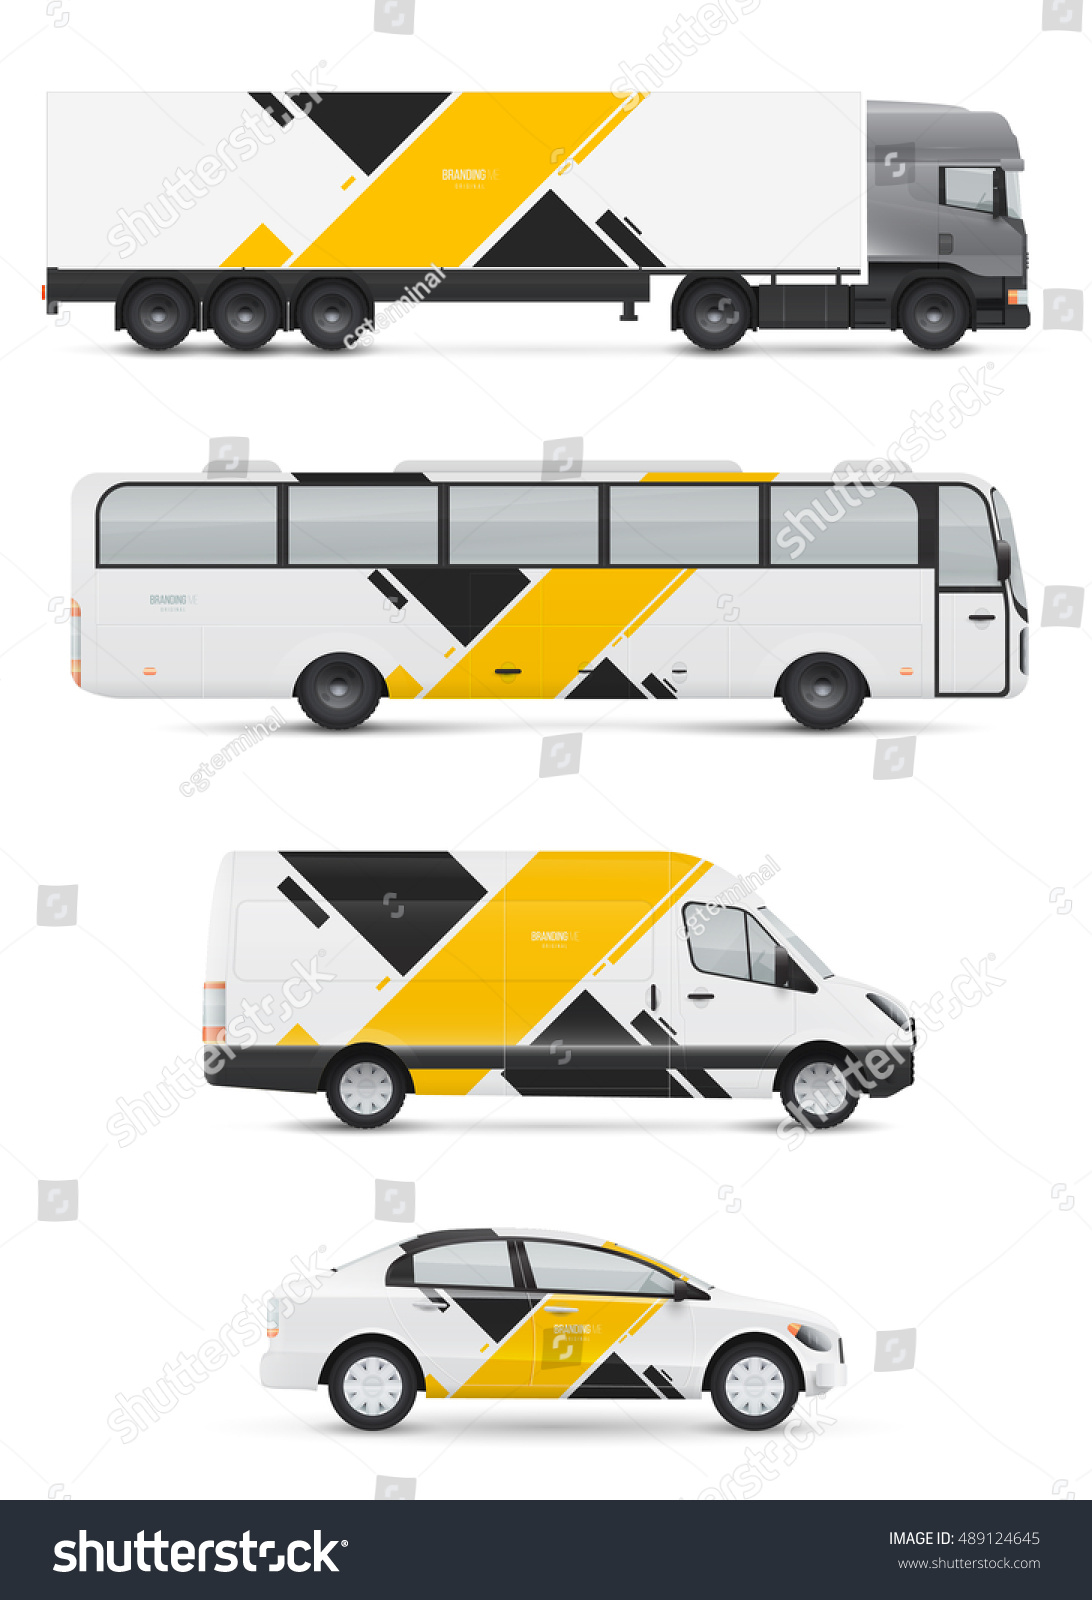 Branding design for transport Mockup of passenger car bus and van Templates vehicles for advertising and corporate identity Graphics elements with abstract modern geometric shapes